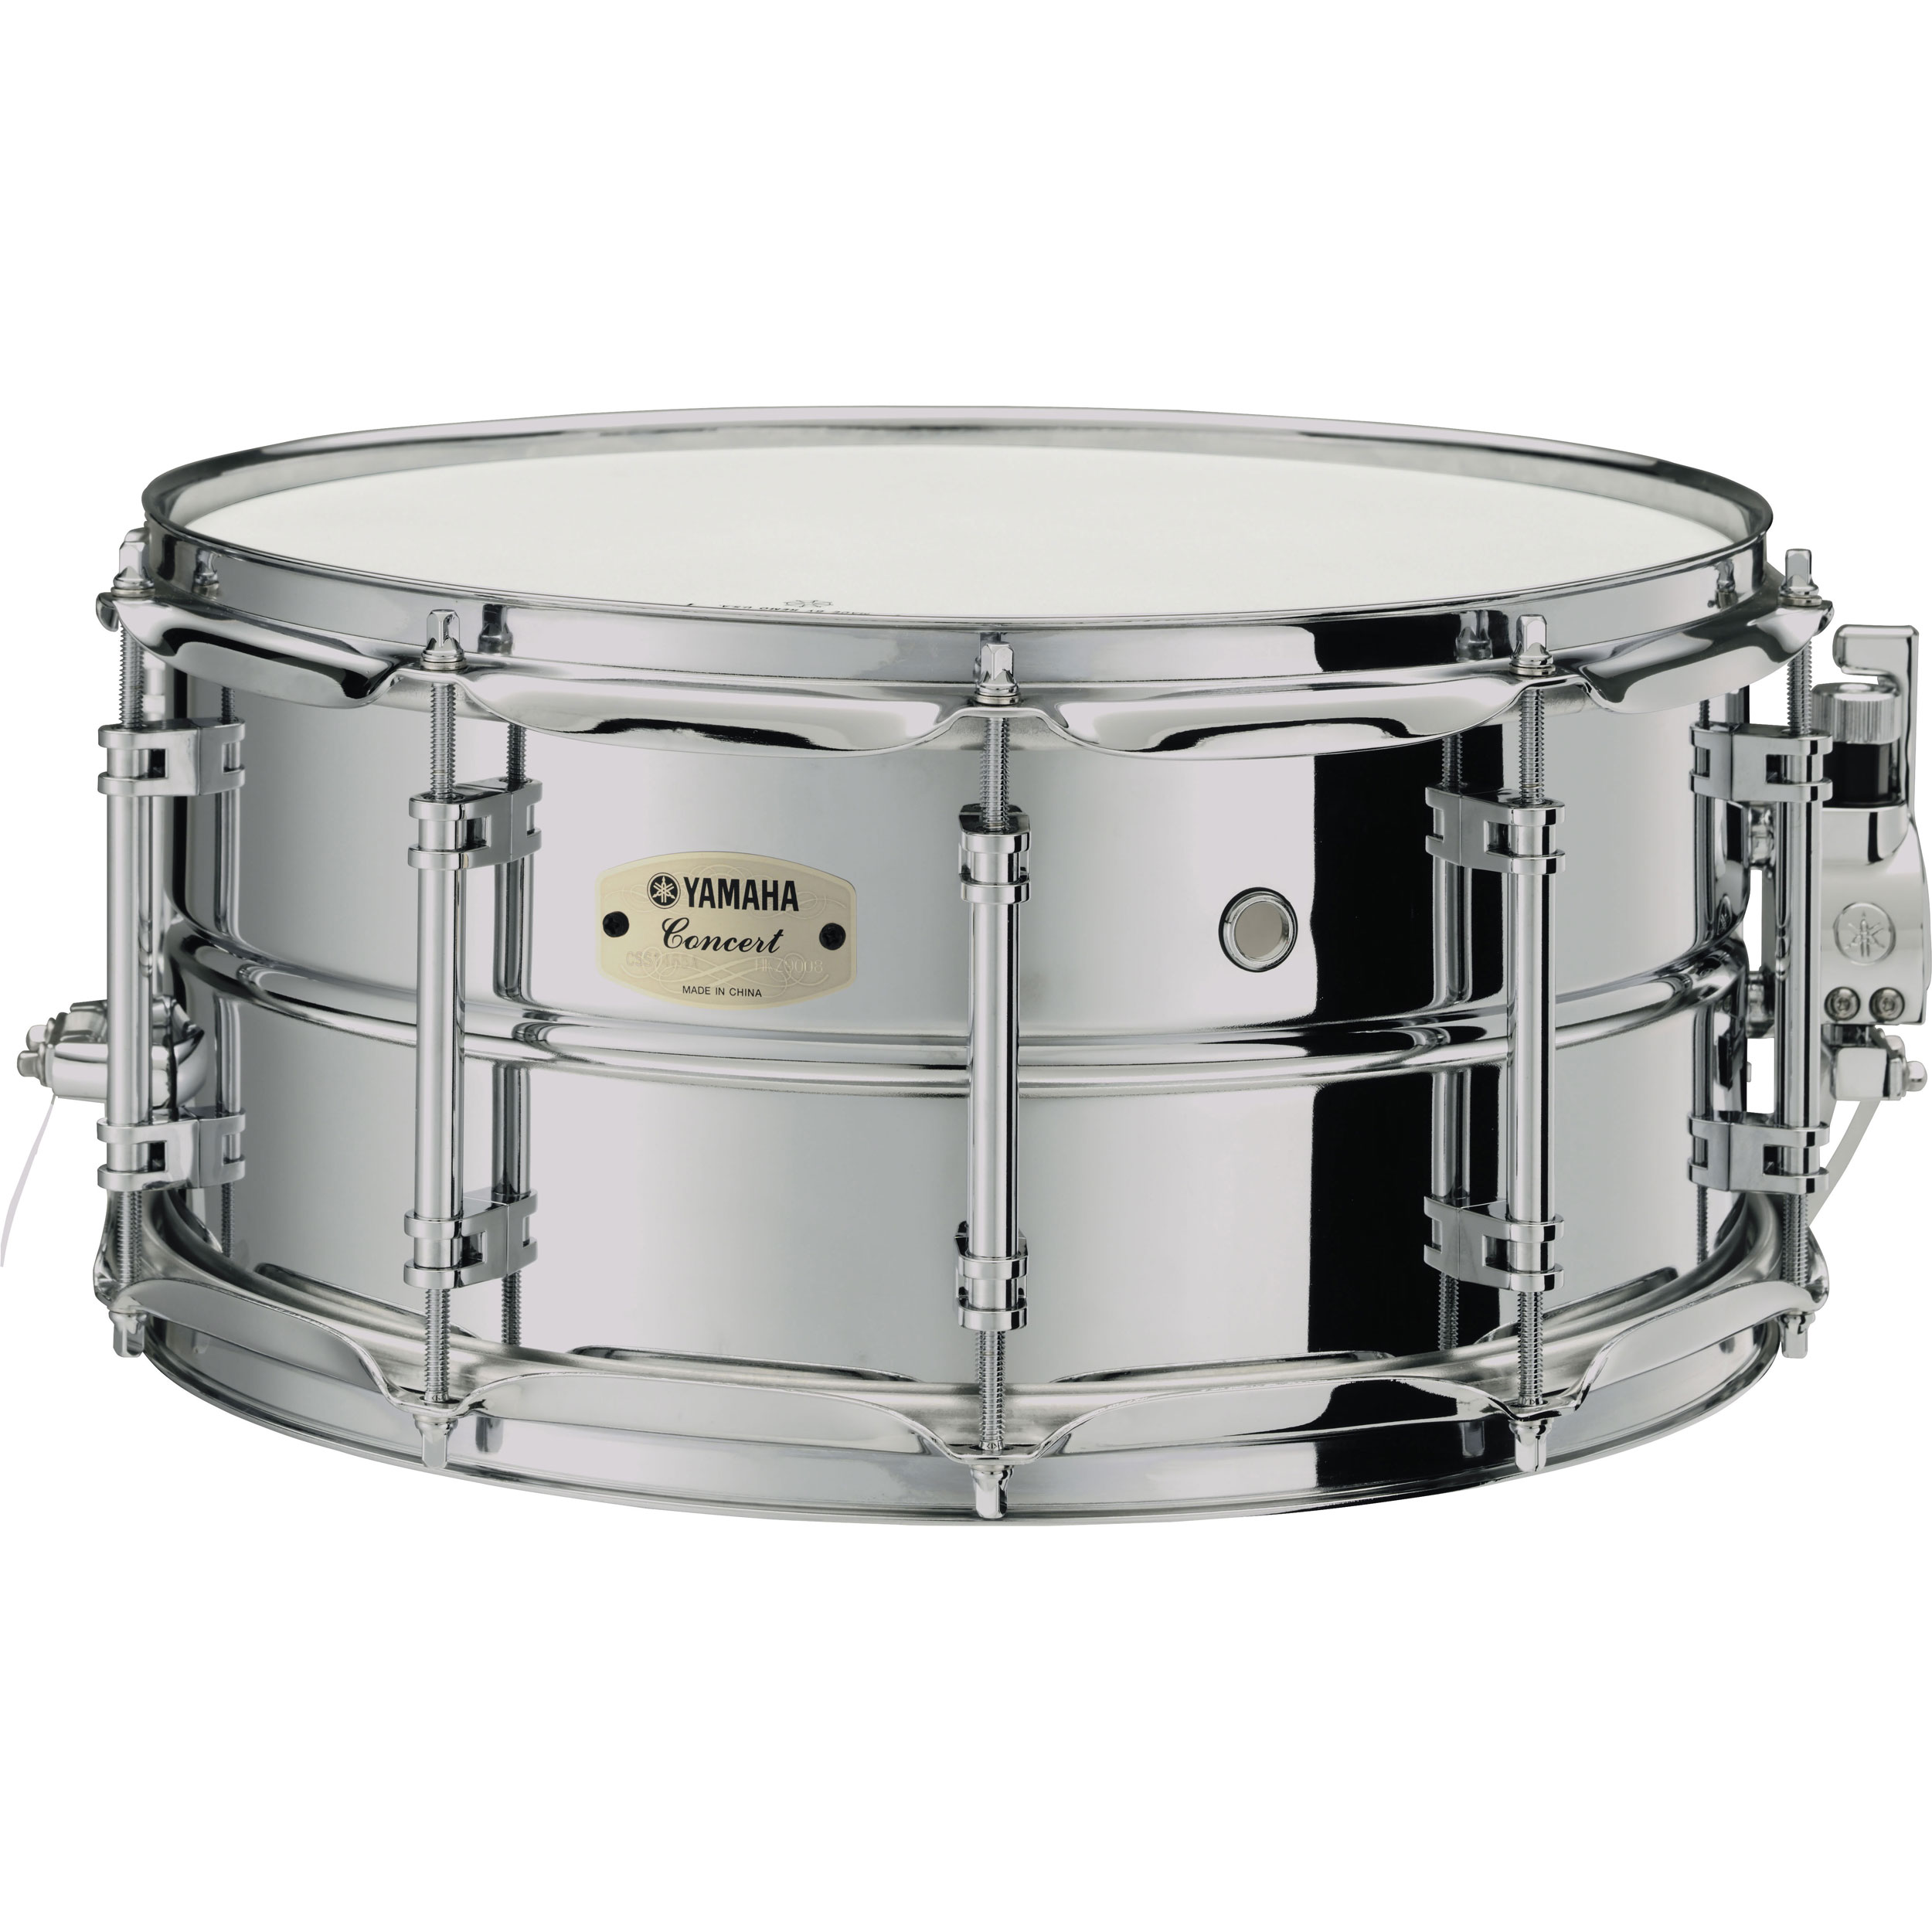 Yamaha css a series 14 x 5 steel concert snare drum css for Yamaha stage custom steel snare drum 14x6 5